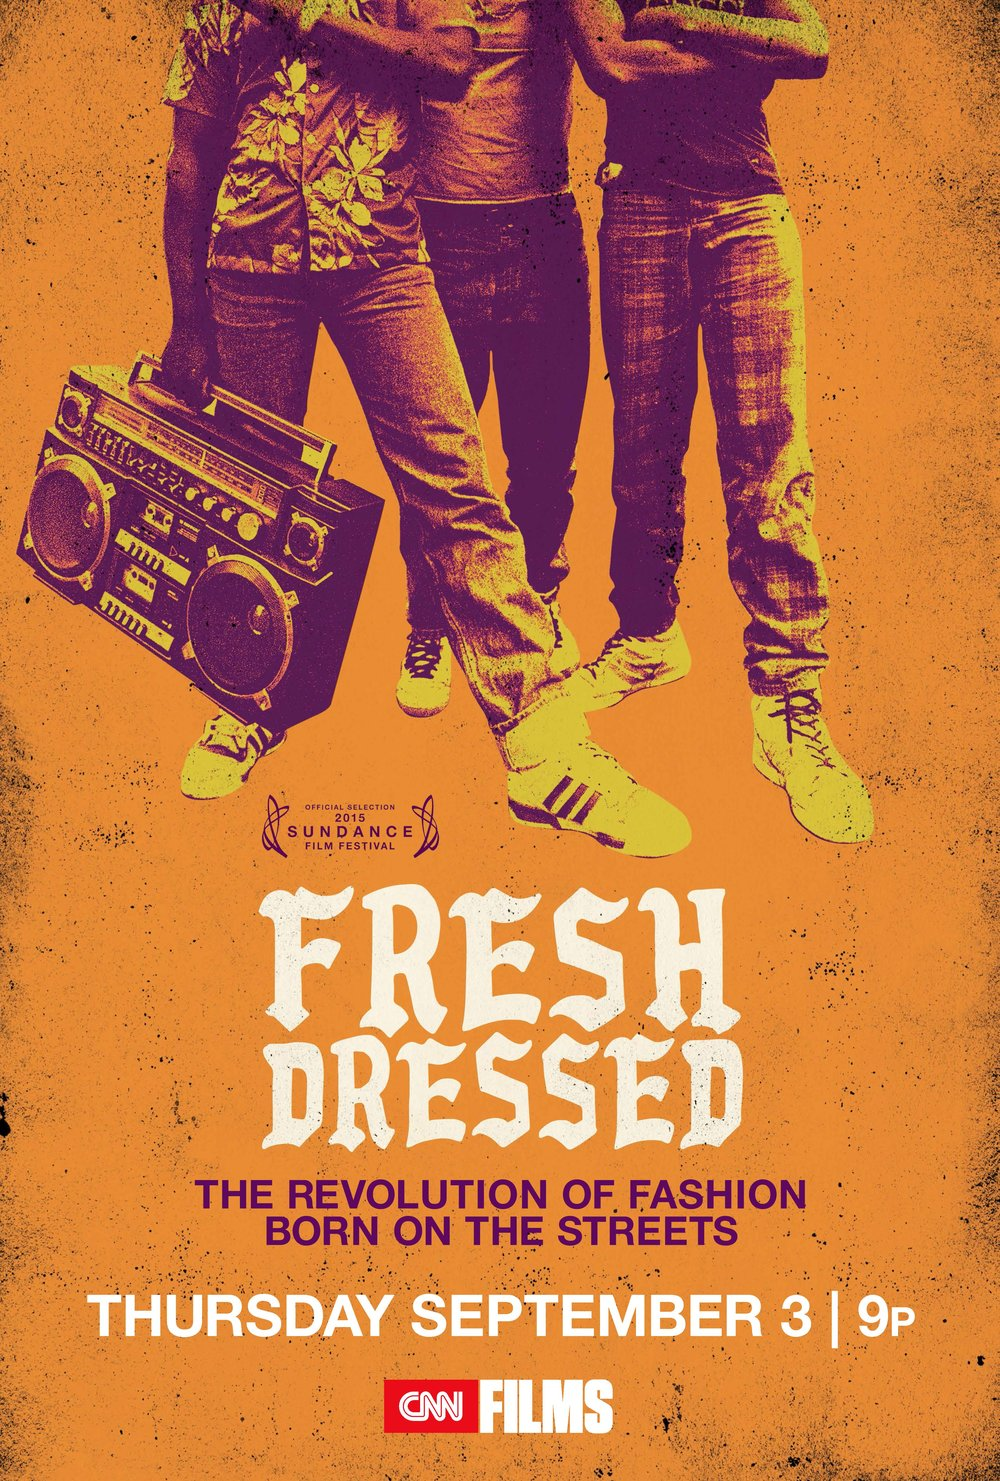 "Fresh Dressed - is a fascinating chronicle of hip-hop, urban fashion, and the hustle that brought oversized pants and graffiti-drenched jackets from Orchard Street to high fashion's catwalks and Middle America shopping malls. Director Sacha Jenkins' music-drenched history draws from a rich mix of archival materials and in-depth interviews with rappers, designers, and other industry insiders.Featuring Kanye West, Pharrell Williams, Sean ""Puffy"" Combs, Nas, Pusha T, Swizz Beatz, Damon Dash, André Leon Talley, A$AP Rocky, Marc Ecko, Big Daddy Kane, Kid 'N Play & many others.Sundance Film Festival World Premiere: Jan 24th 2015Broadcast Premiere: June 26th 2015 CNN FILMSDirected By Sacha JenkinsProduced By Marcus A. ClarkeTap poster view trailer"